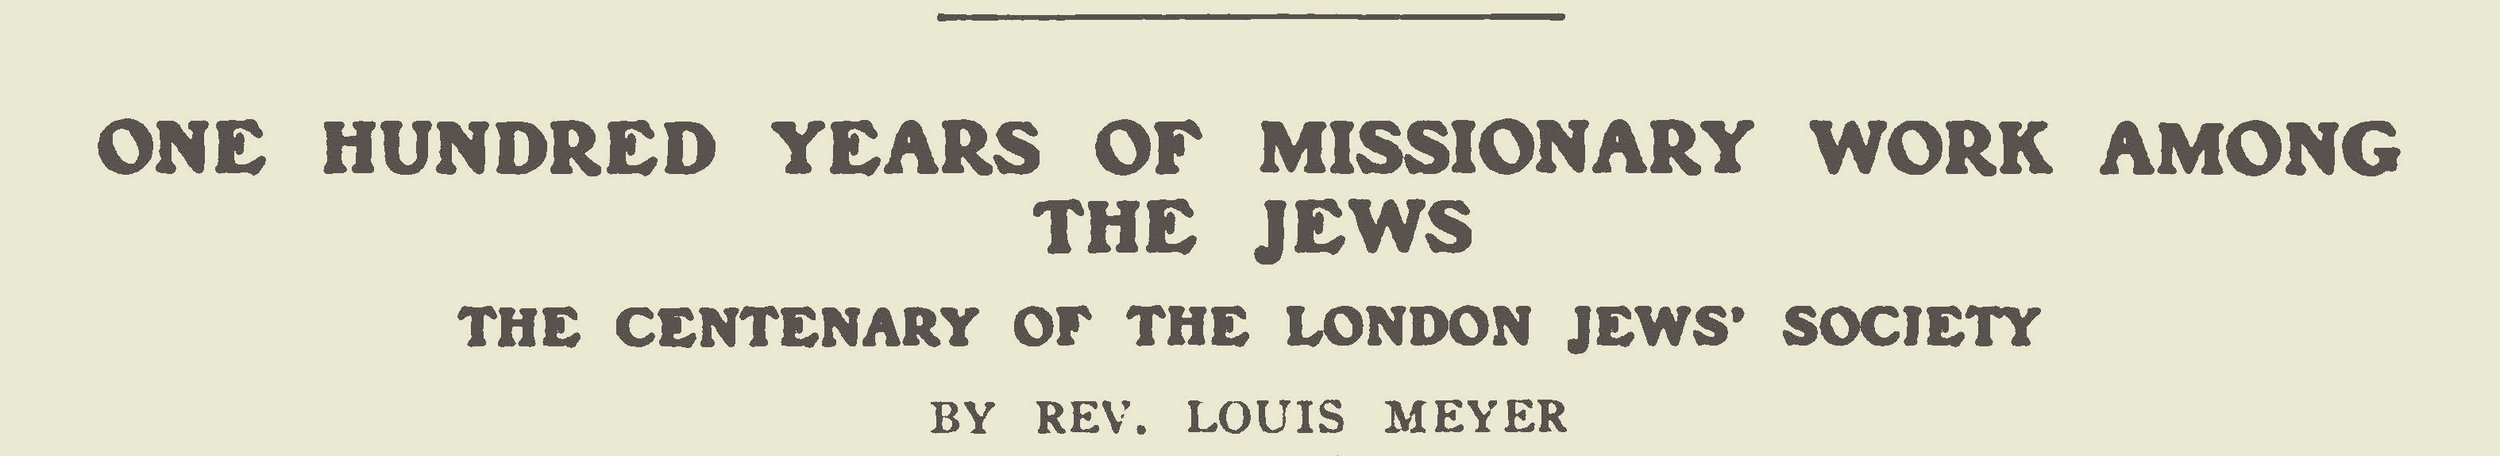 Meyer, Louis, One Hundred Years of Missionary Work Among the Jews Title Page.jpg